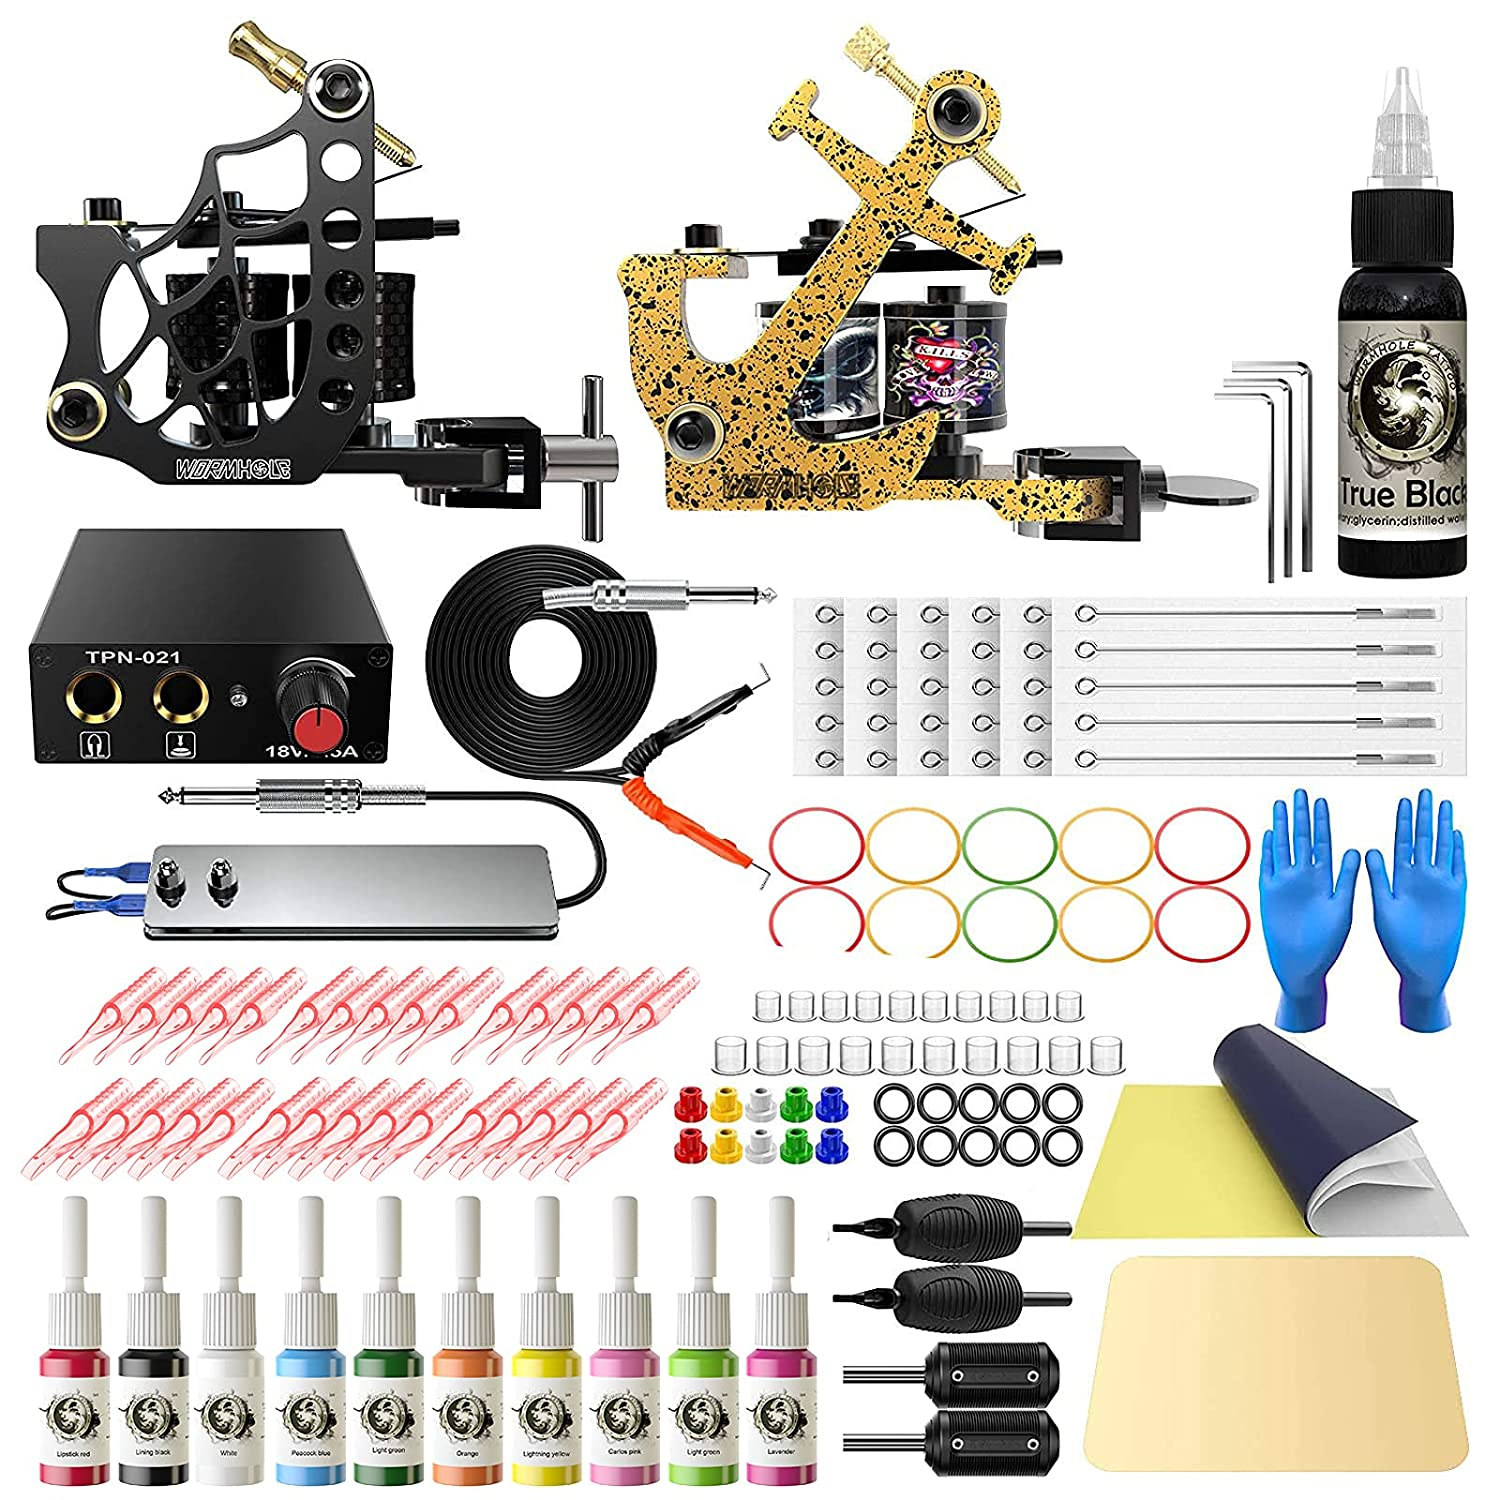 Wormhole Tattoo Kit Complete Safety Choice and trust Beginne for Machine Coil